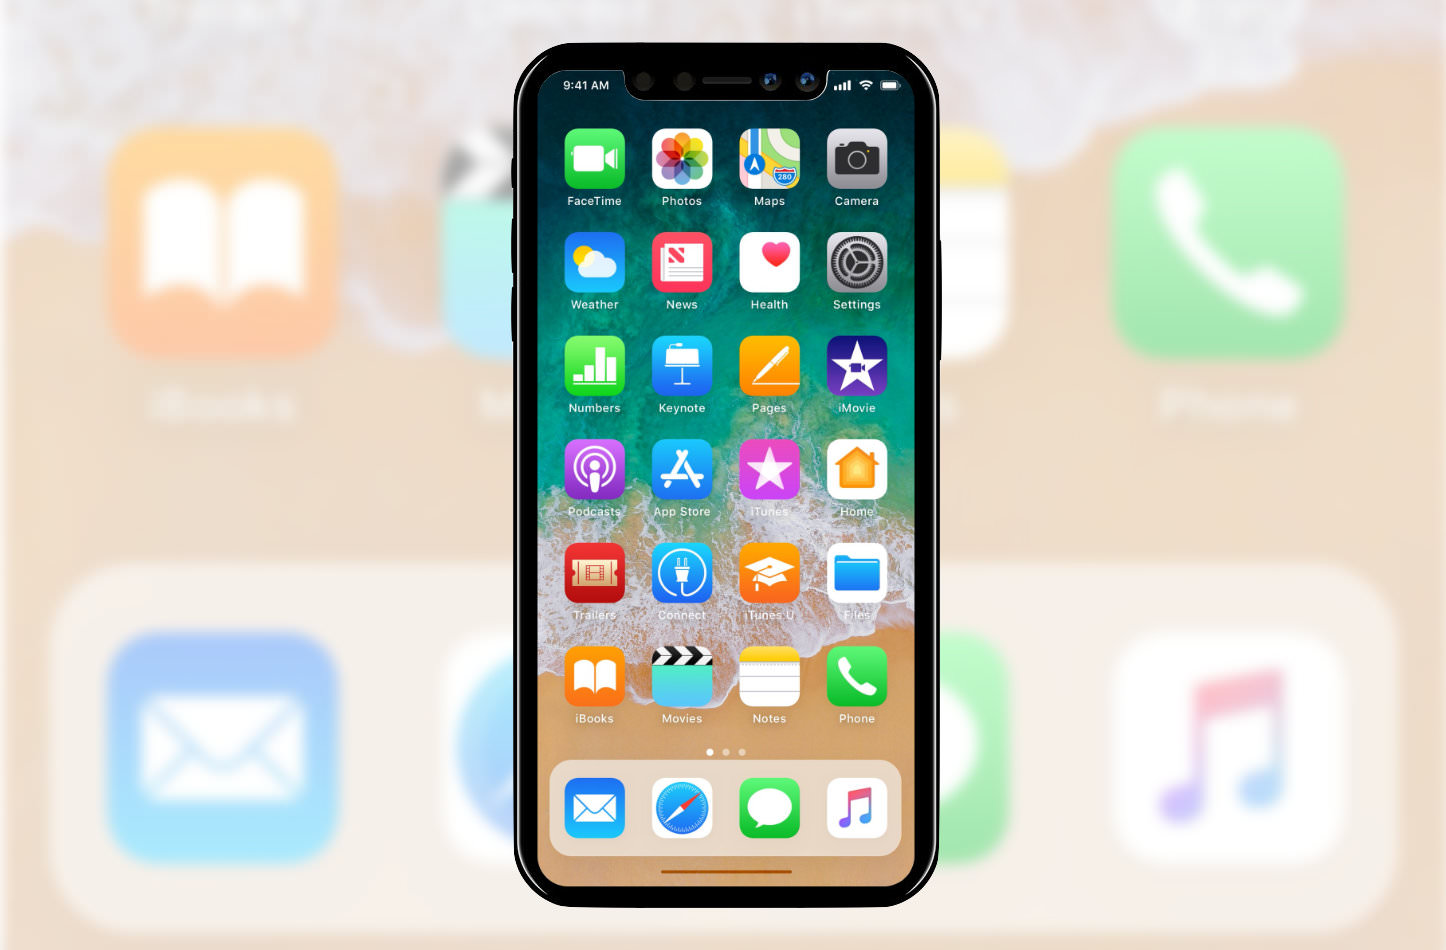 iphone8pro-and-ios11-dock.jpg